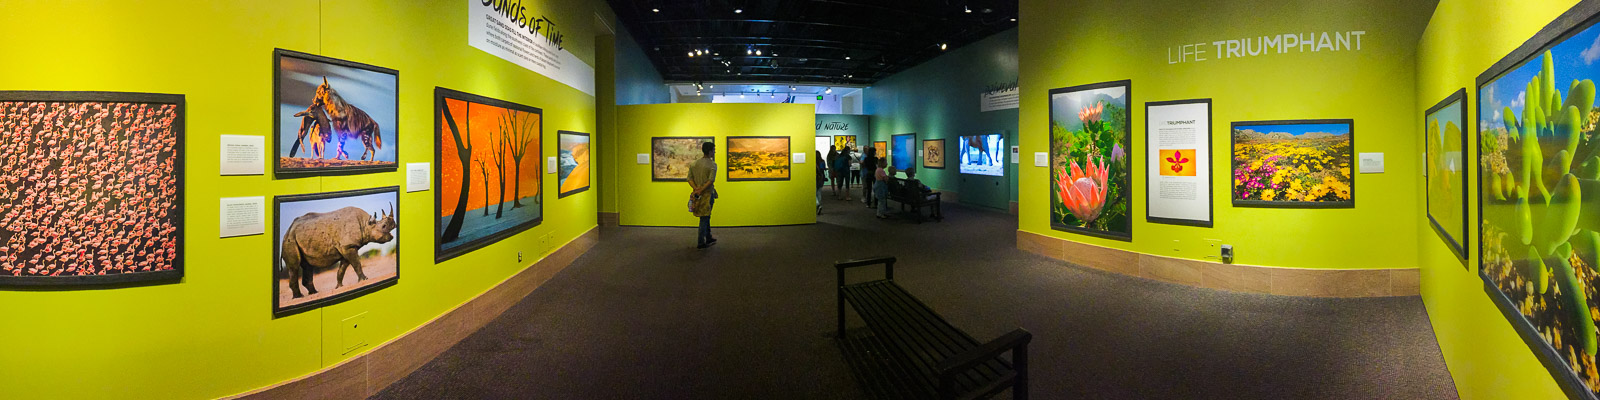 Visitors at Frans Lanting's Into Africa exhibit at the Smithsonian National Museum of Natural History, Washington D.C., USA